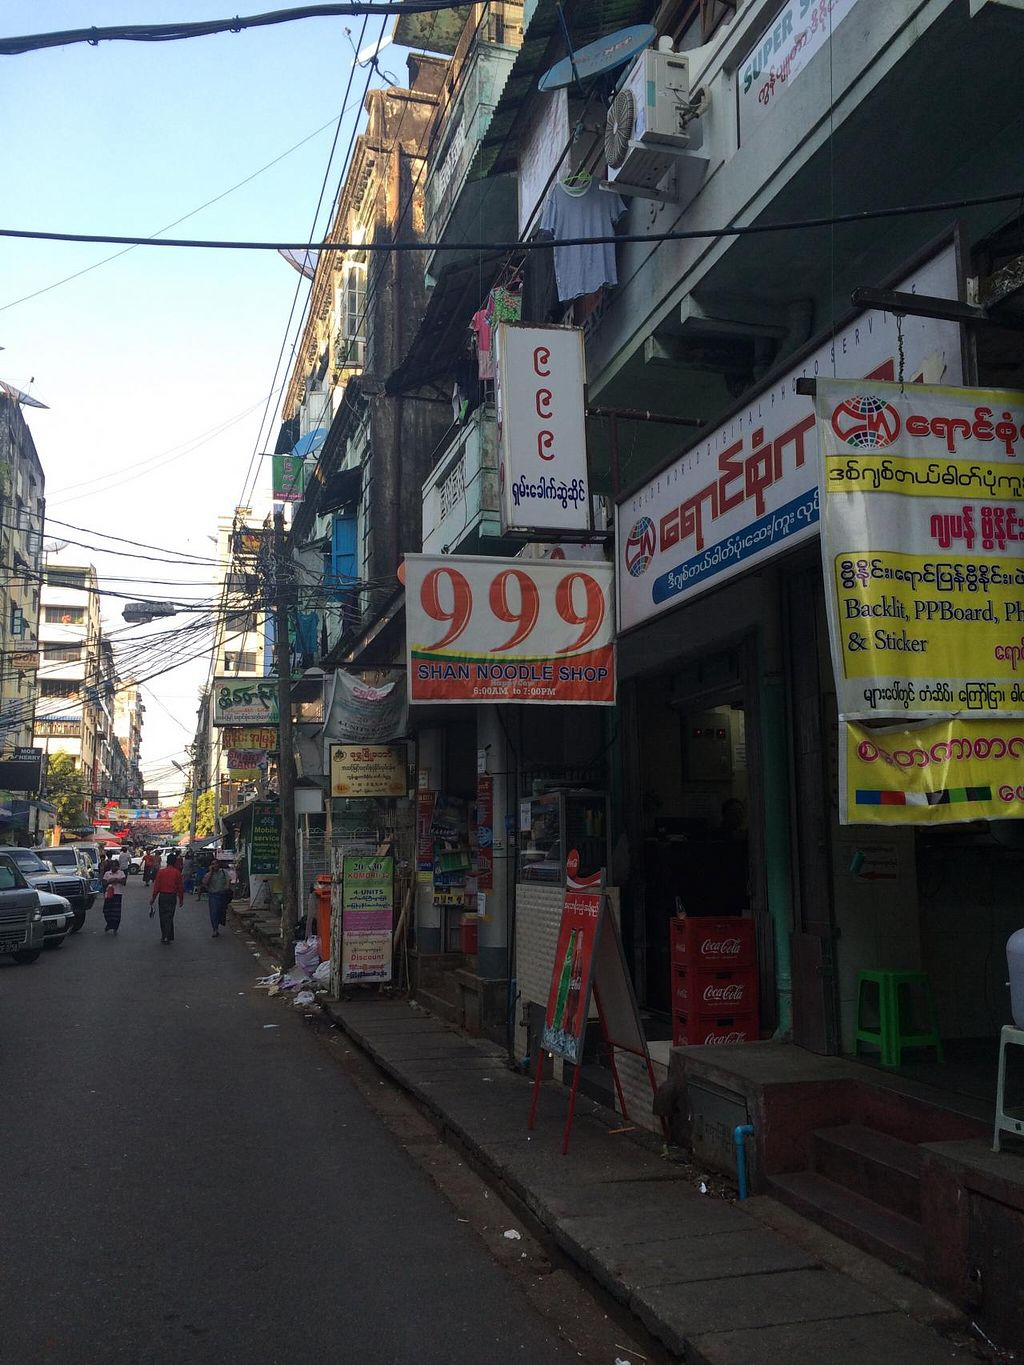 """Photo of 999 Shan Noodle Shop  by <a href=""""/members/profile/Plantpower"""">Plantpower</a> <br/>999 Shan Noodle Shop from the street <br/> March 23, 2015  - <a href='/contact/abuse/image/55096/96626'>Report</a>"""